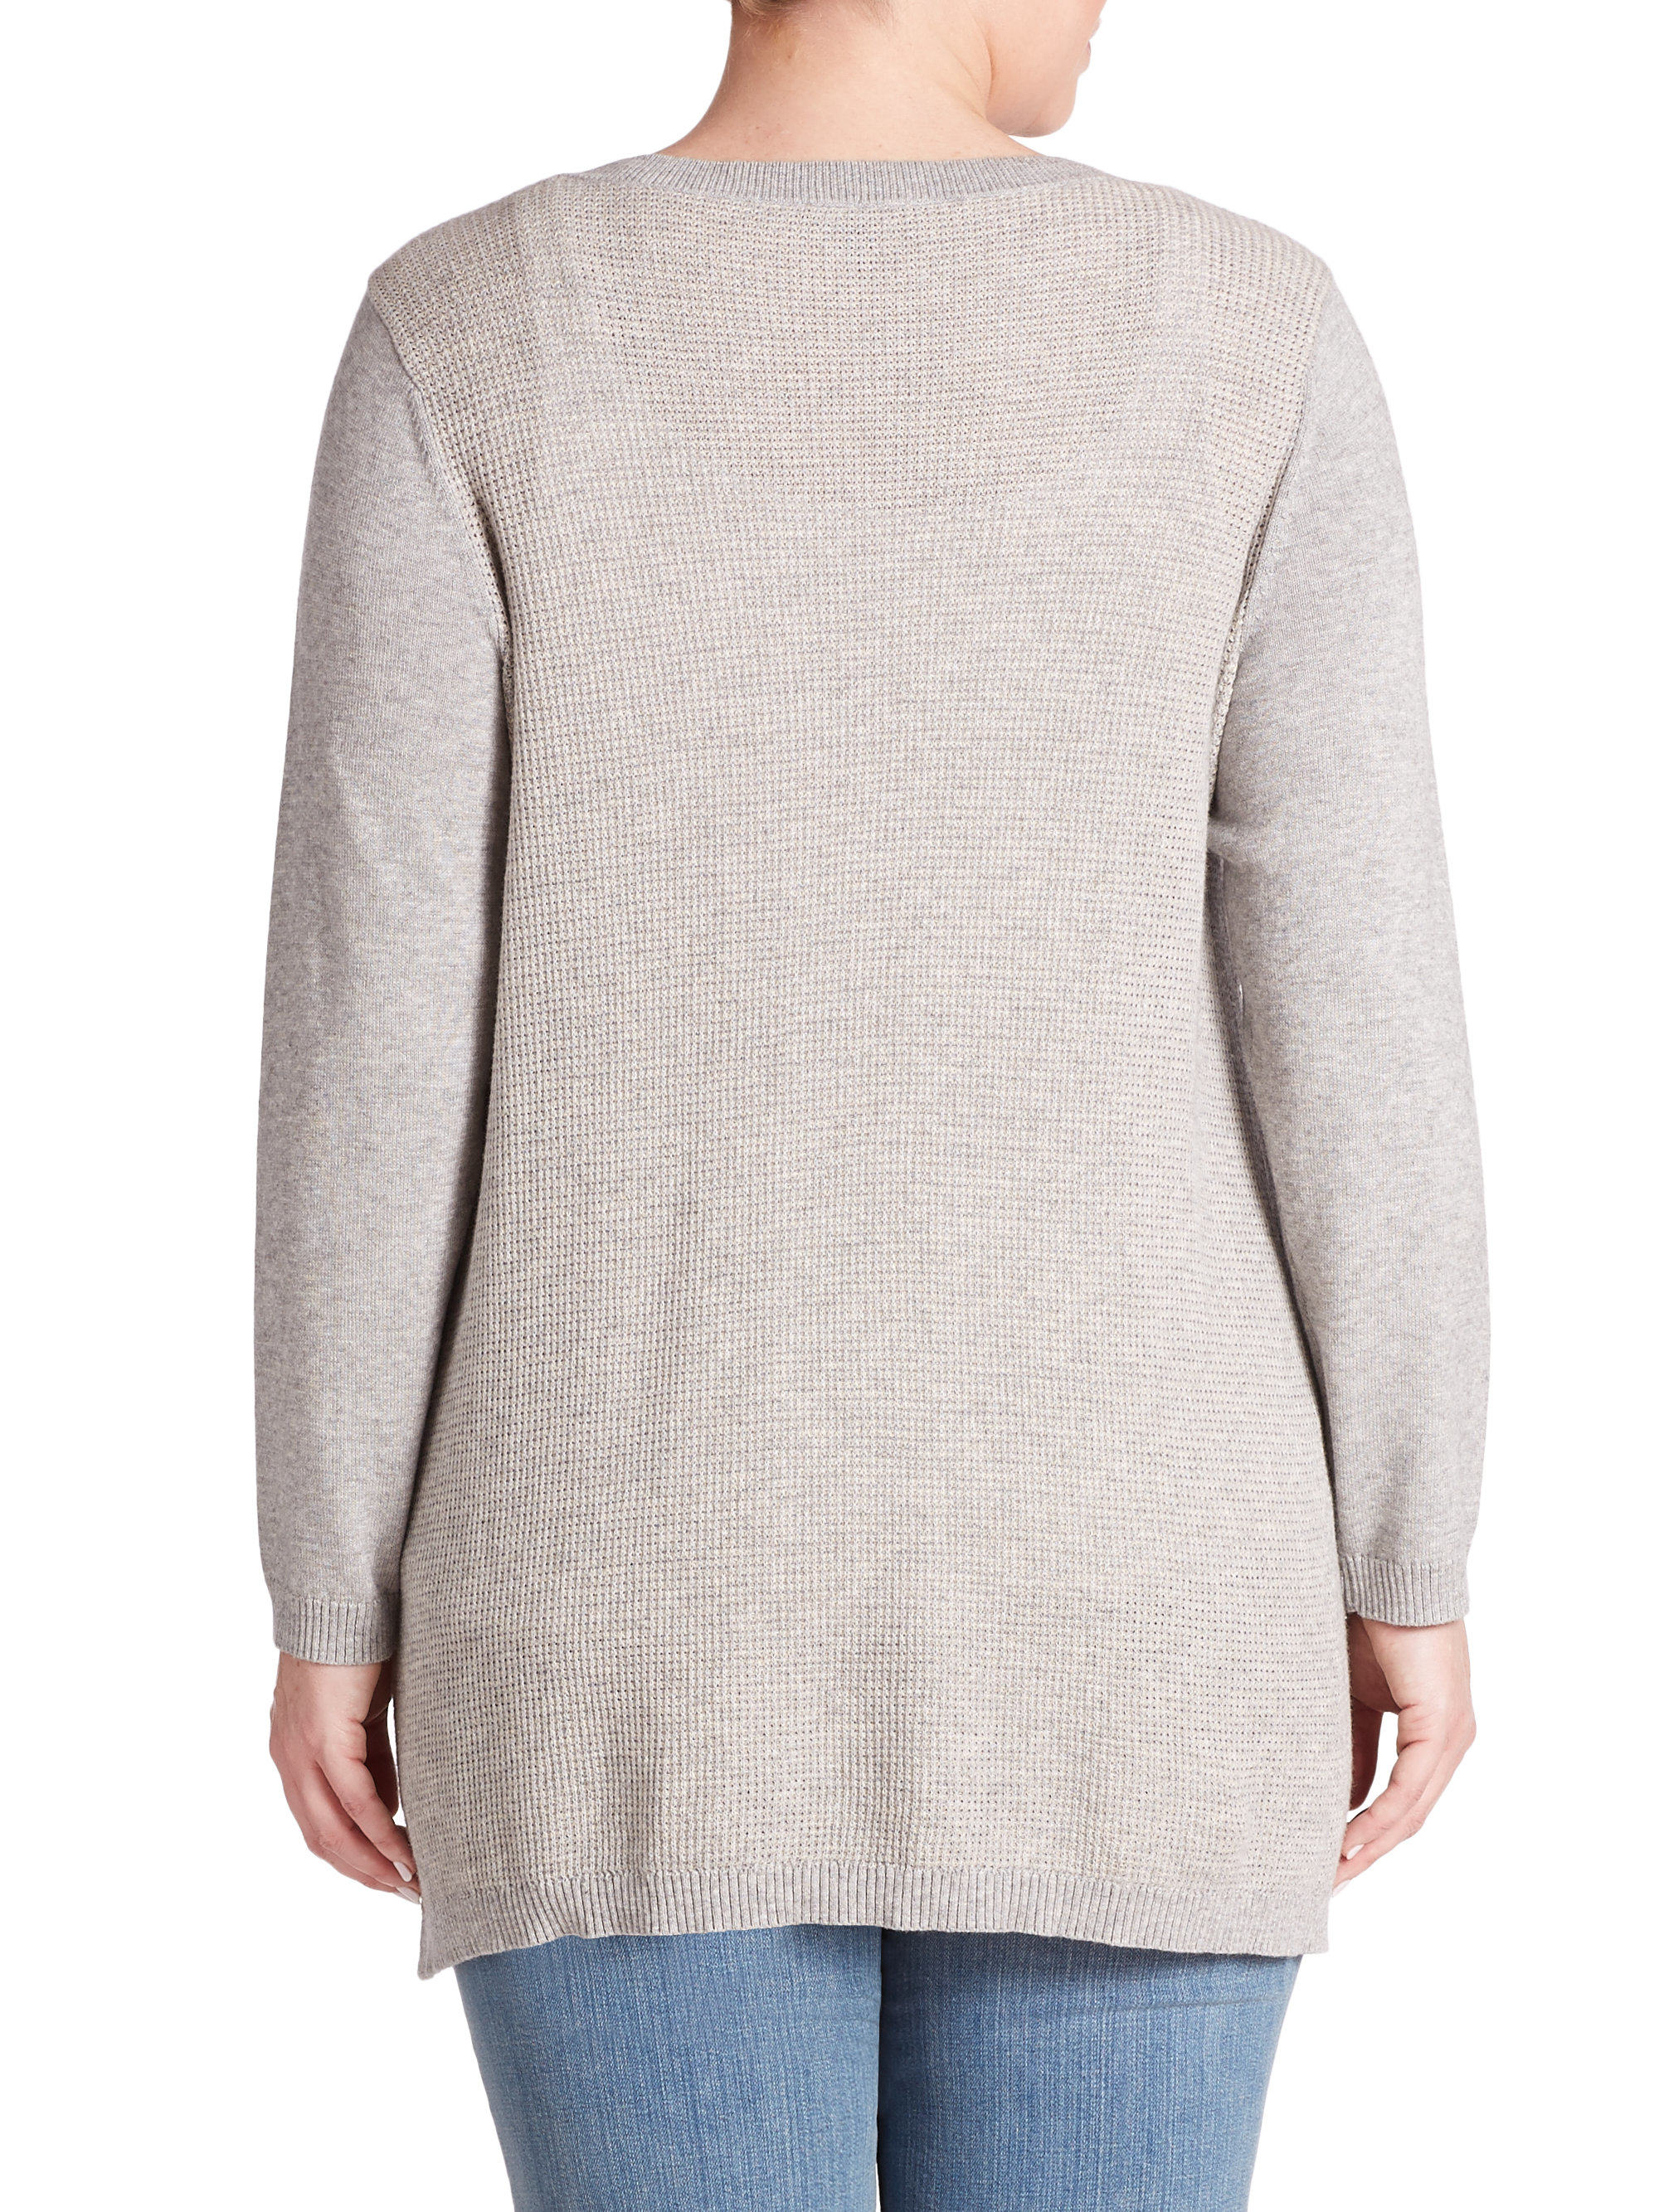 Eileen fisher Cotton/cashmere Sweater in Gray | Lyst